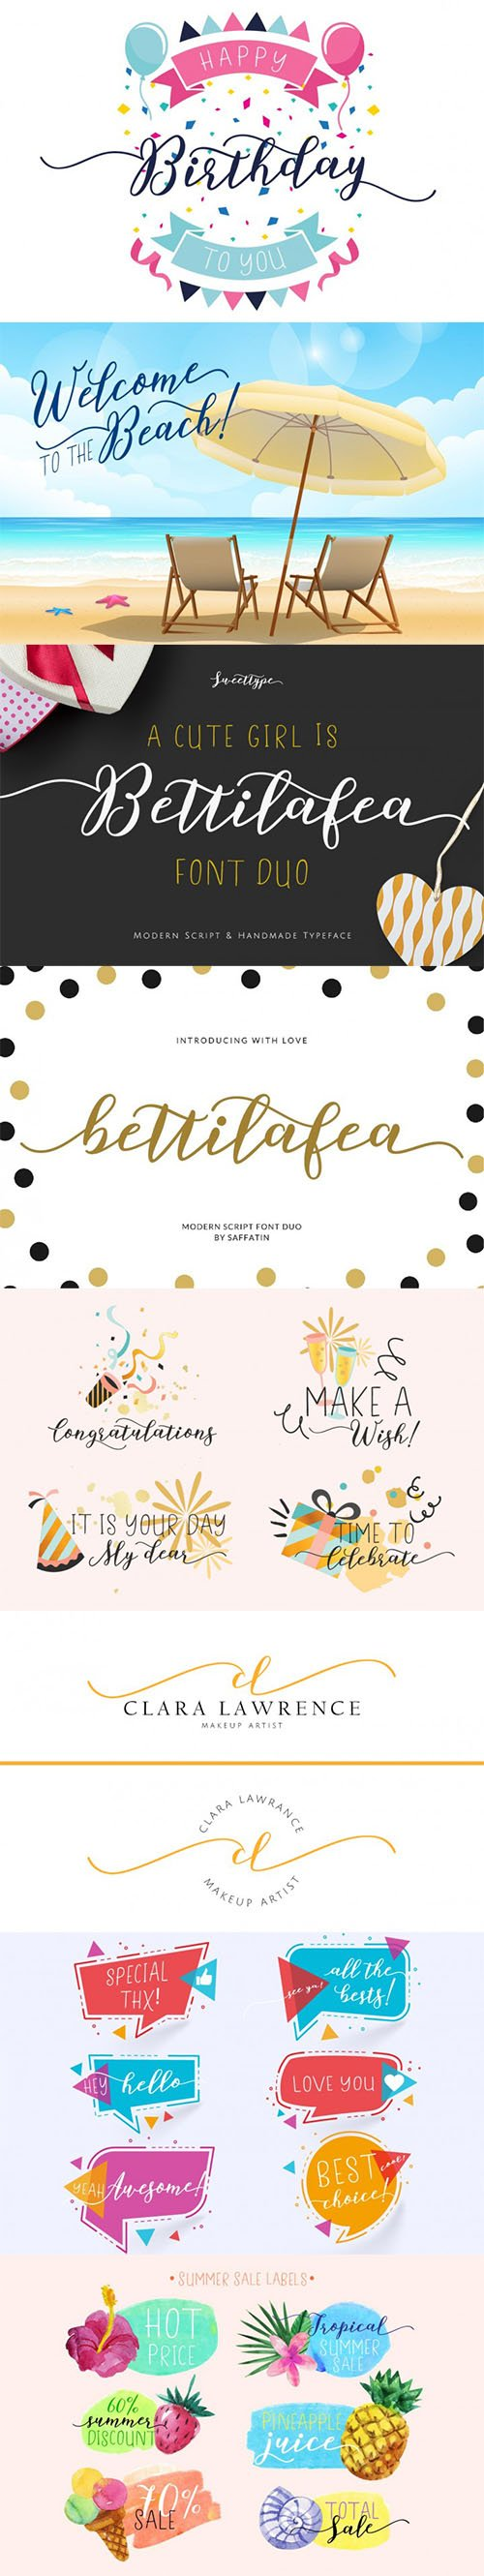 Bettilafea Font Duo 73180